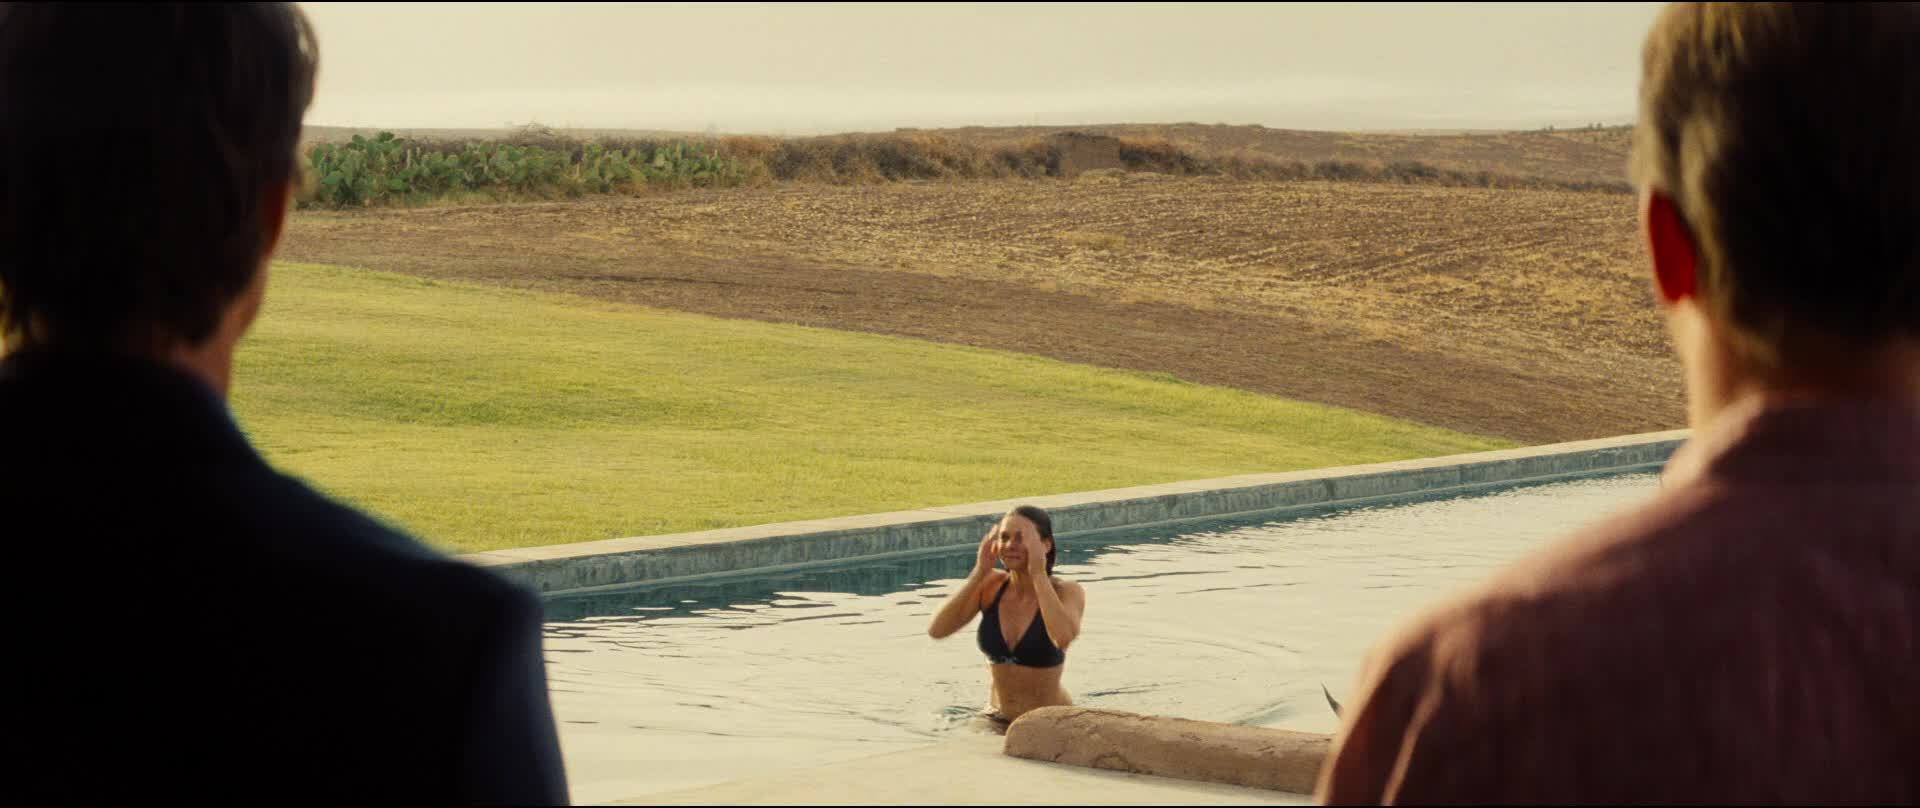 Mission Impossible, Rebecca Ferguson, RebeccaLouisaFerguson, Emerging from the water GIFs